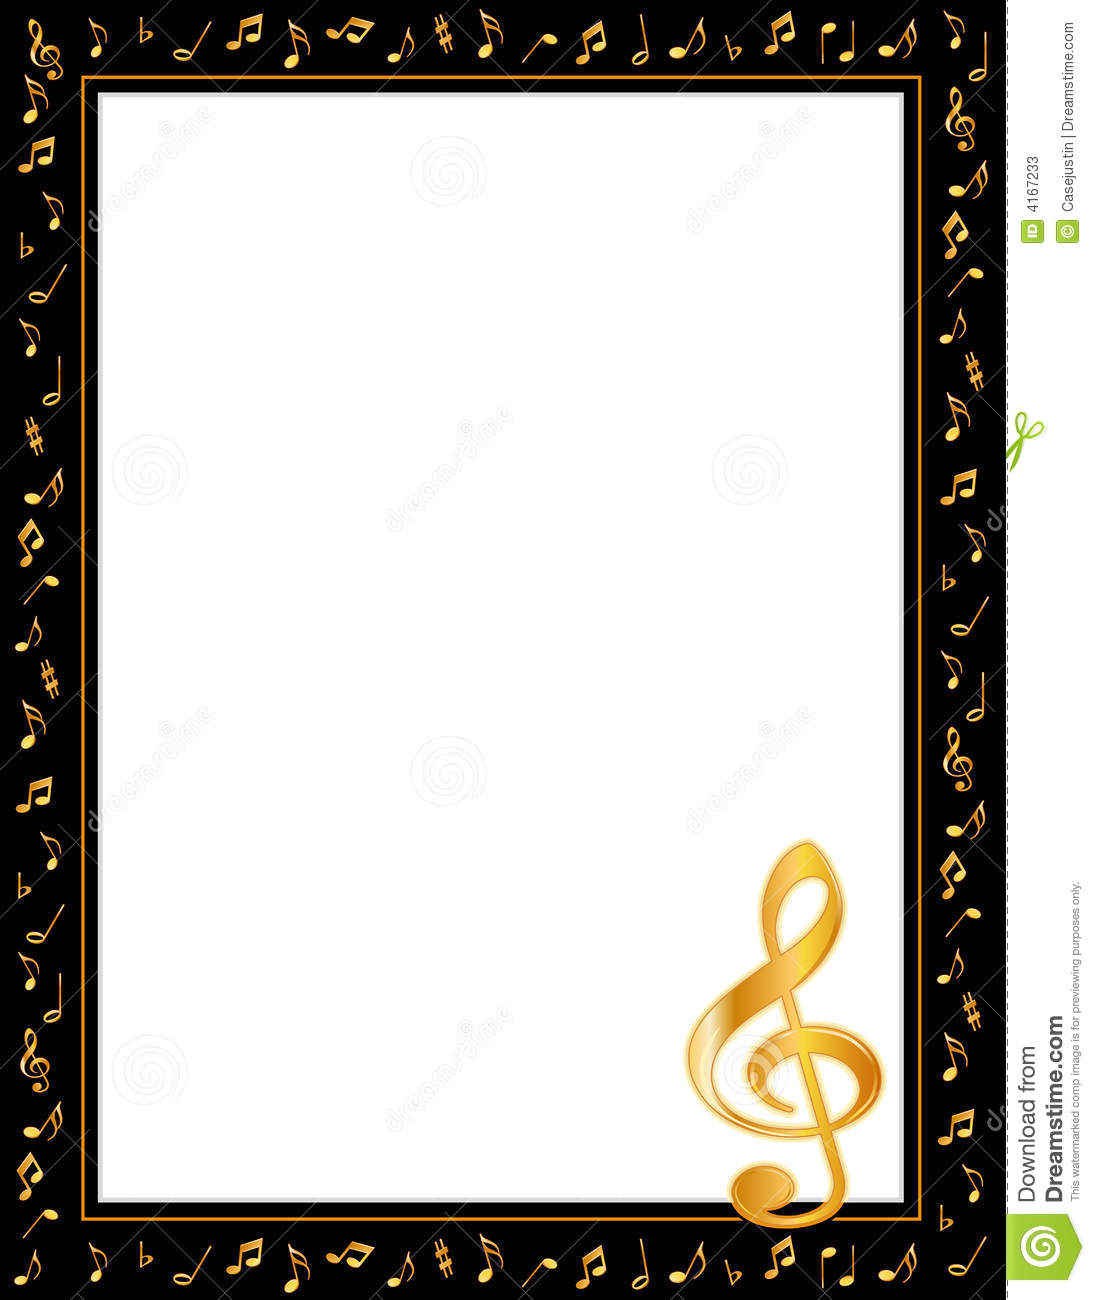 Music Notes Poster Frame | Clipart Panda - Free Clipart Images